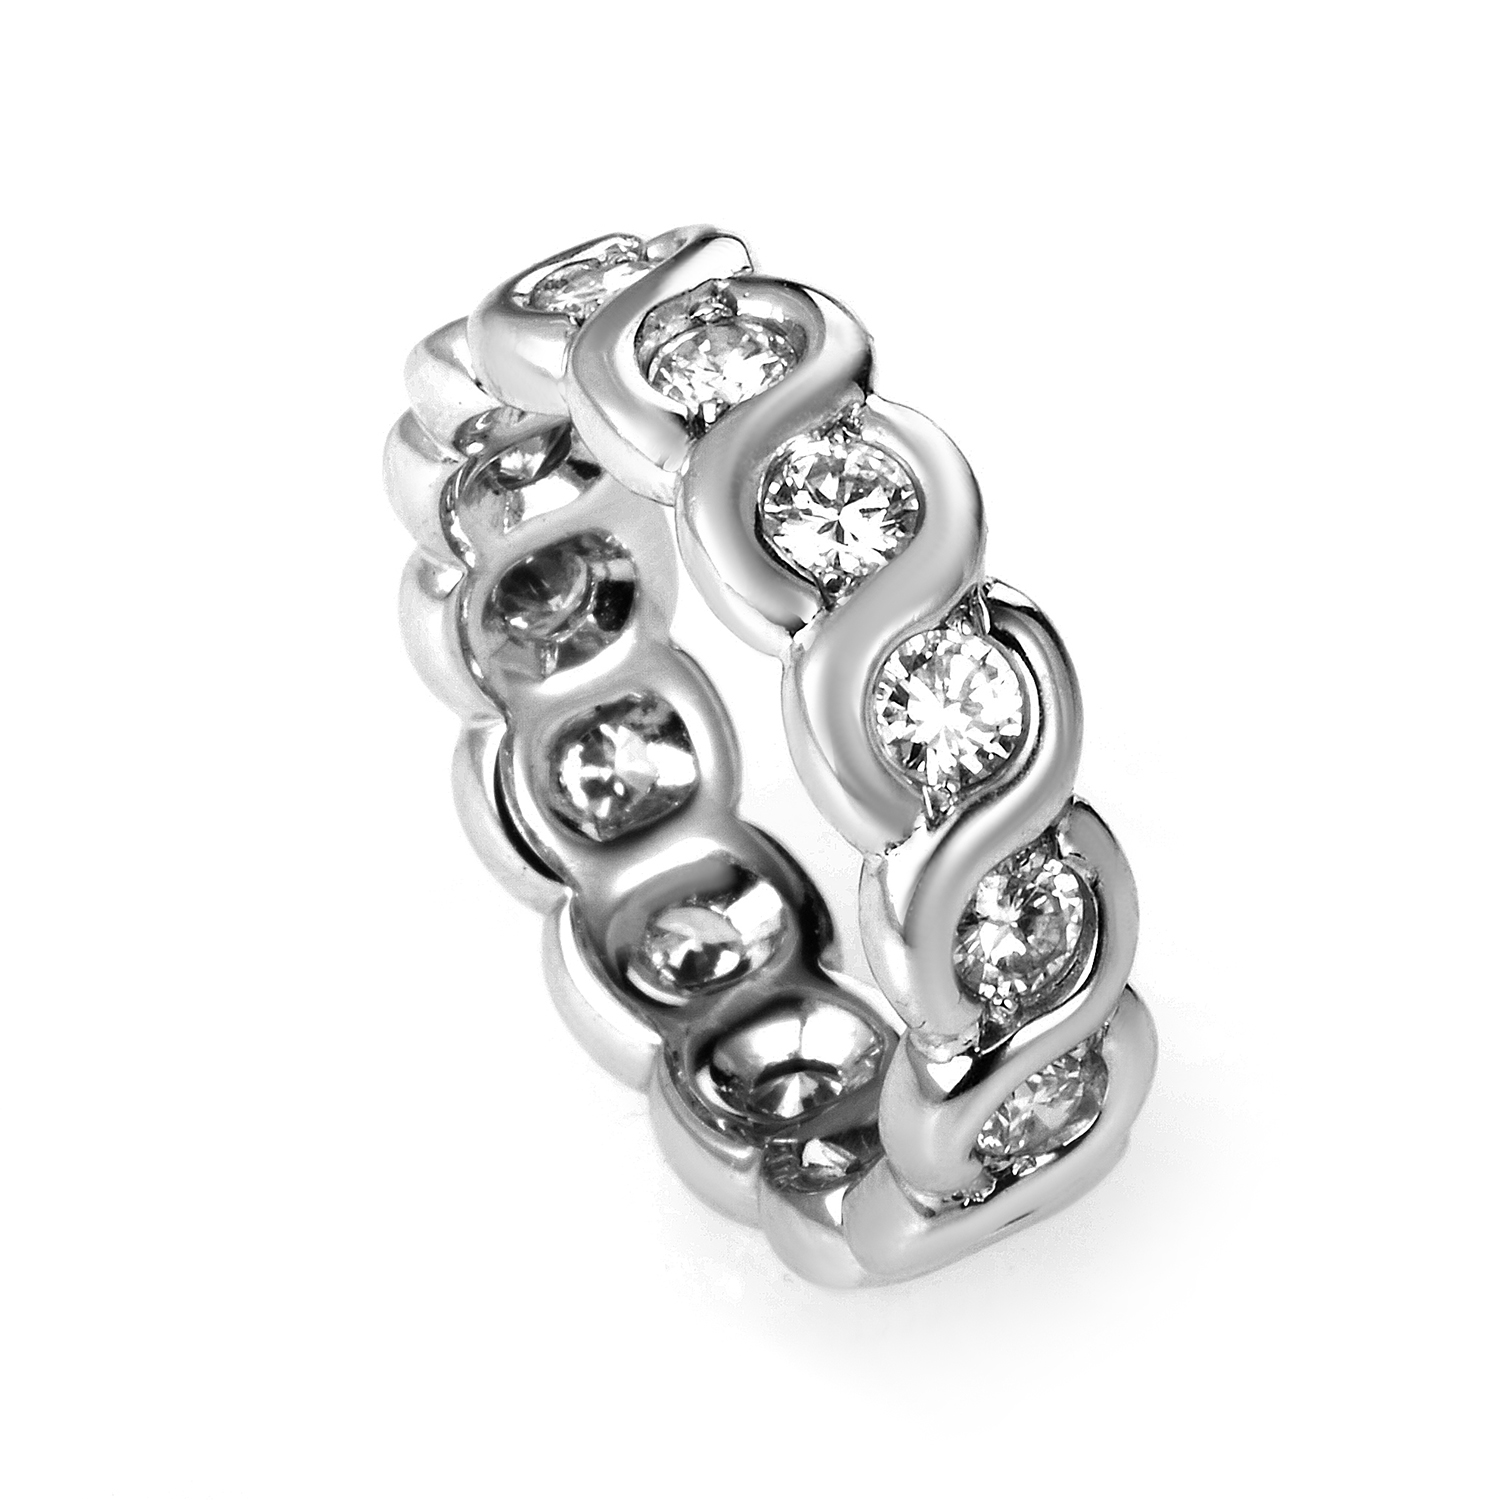 Van Cleef & Arpels 18K White Gold Diamond Eternity Band